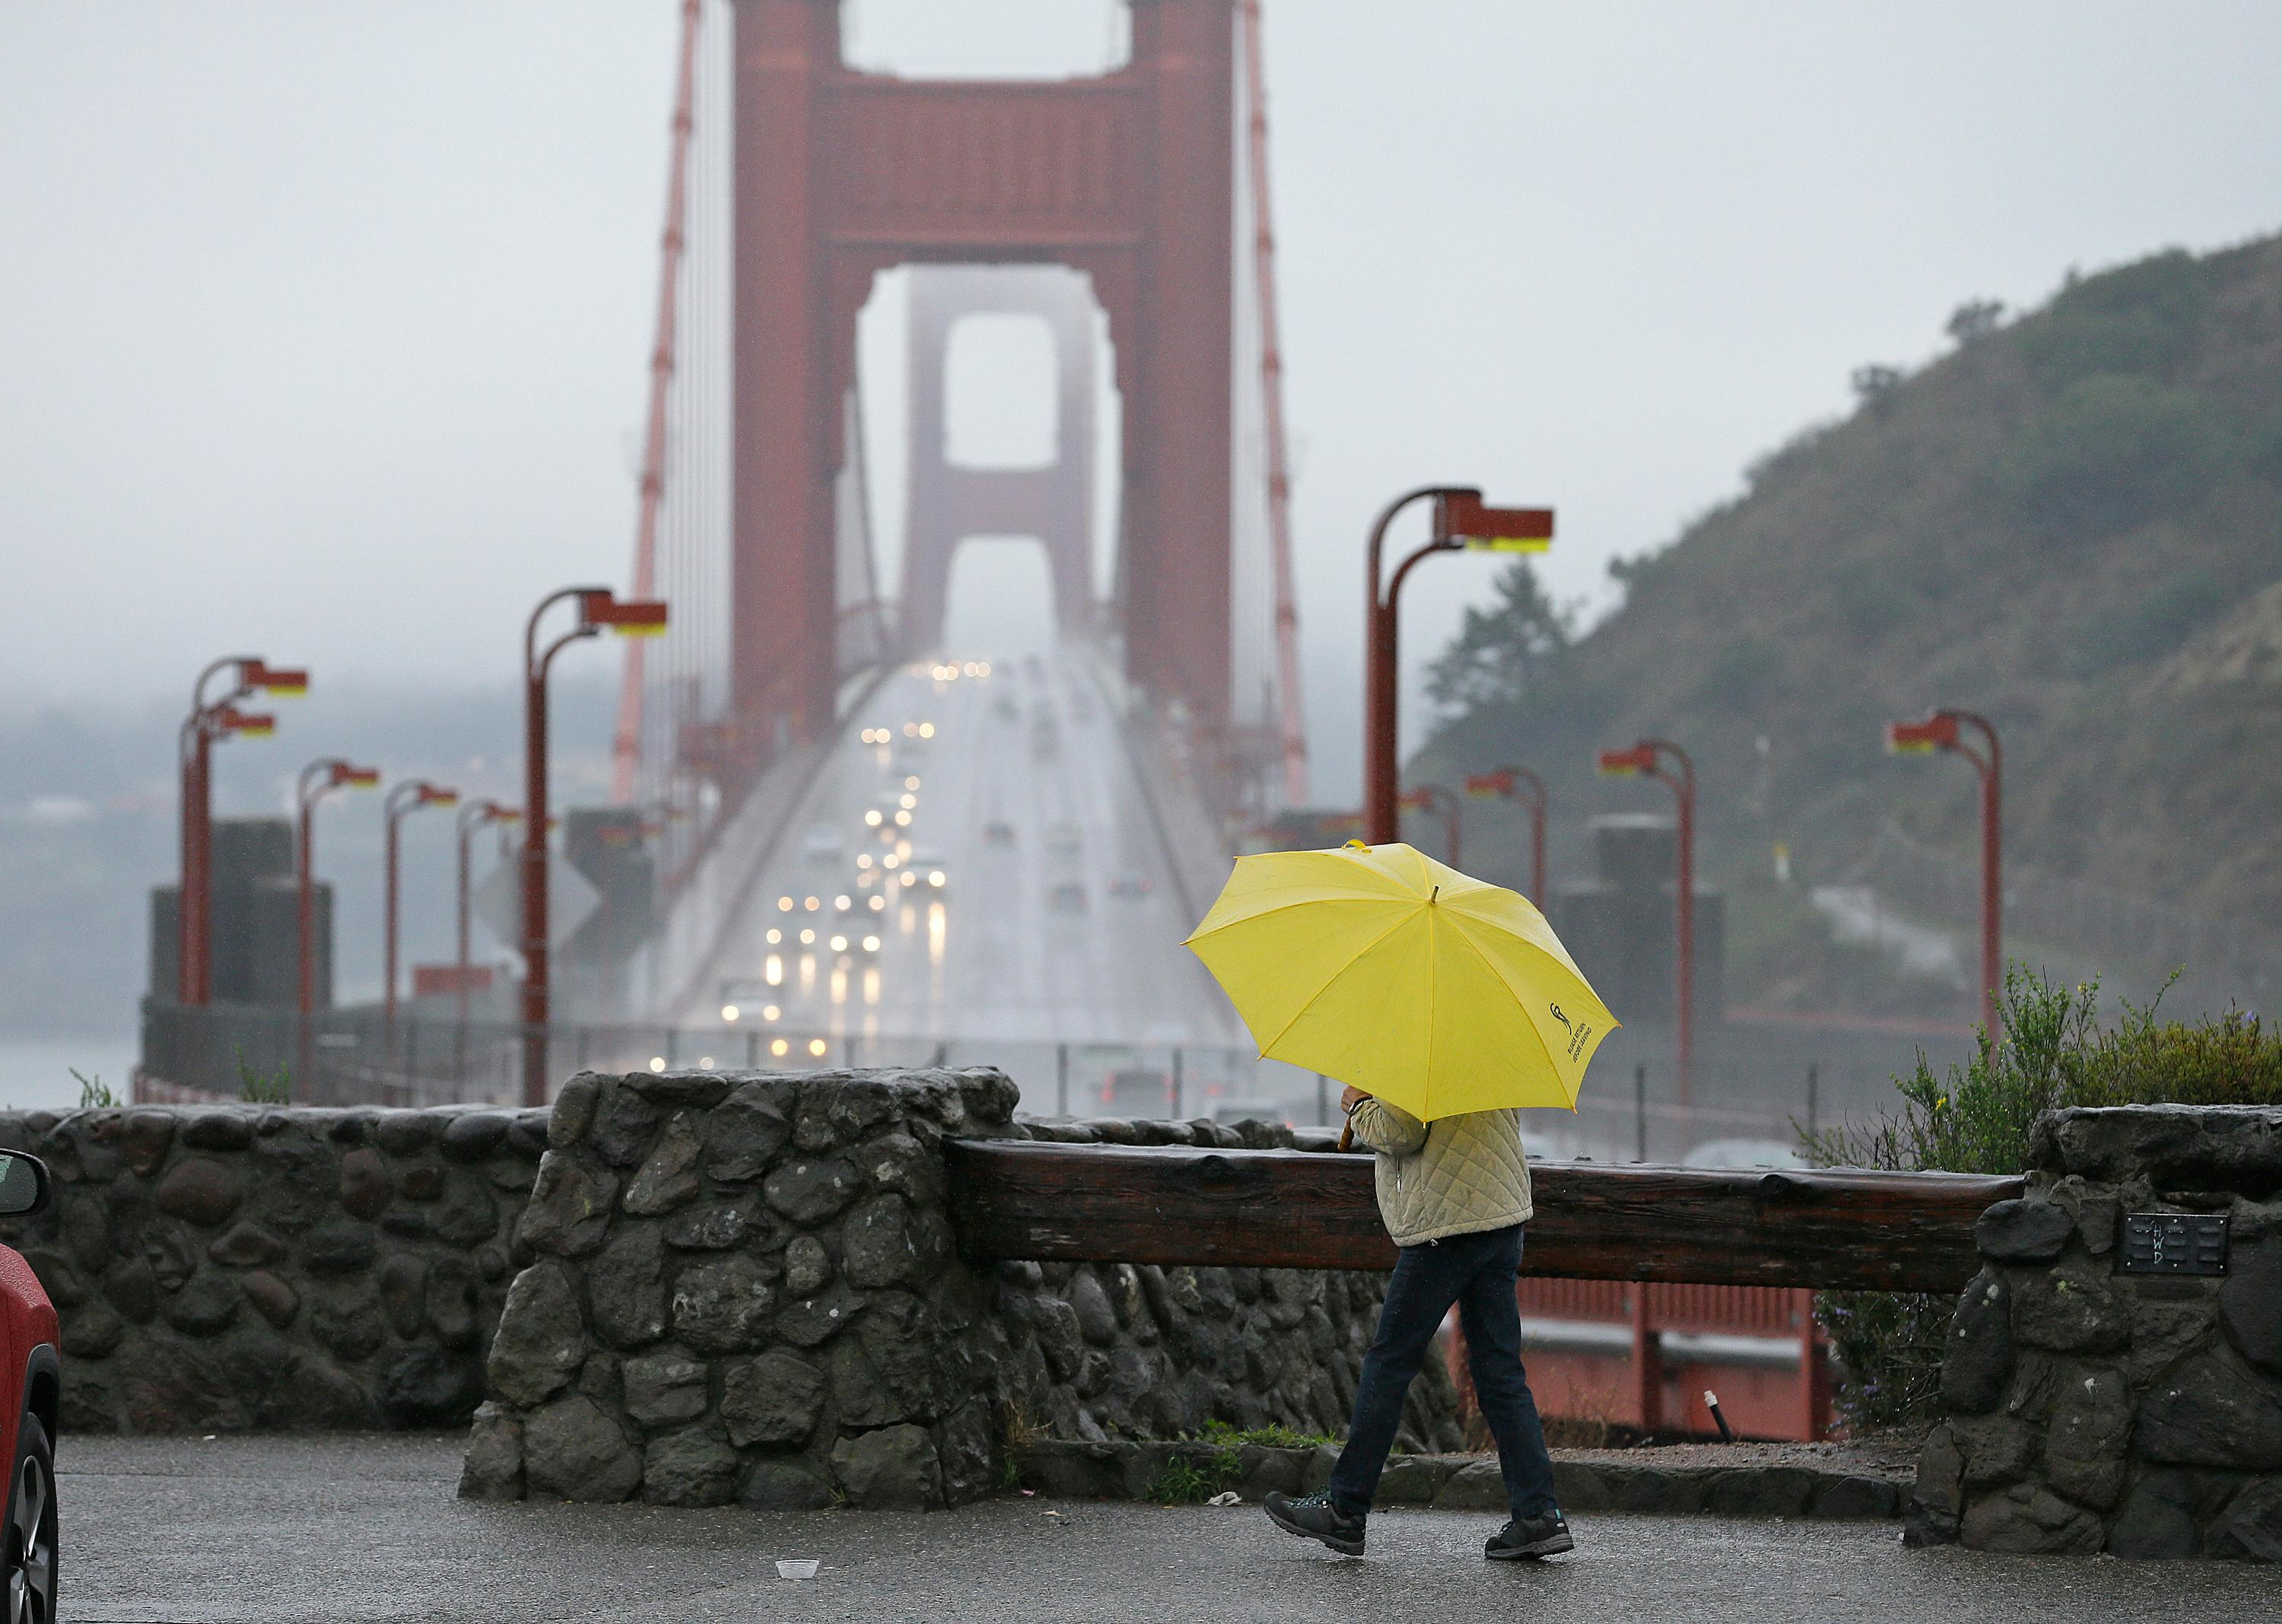 A woman walks in the rain at a vista point with the Golden Gate Bridge in the background Monday, Jan. 8, 2018, near Sausalito, Calif. Storms brought rain to California on Monday and increased the risk of mudslides in fire-ravaged communities in devastated northern wine country and authorities to order evacuations farther south for towns below hillsides burned by the state's largest-ever wildfire. (AP Photo/Eric Risberg)